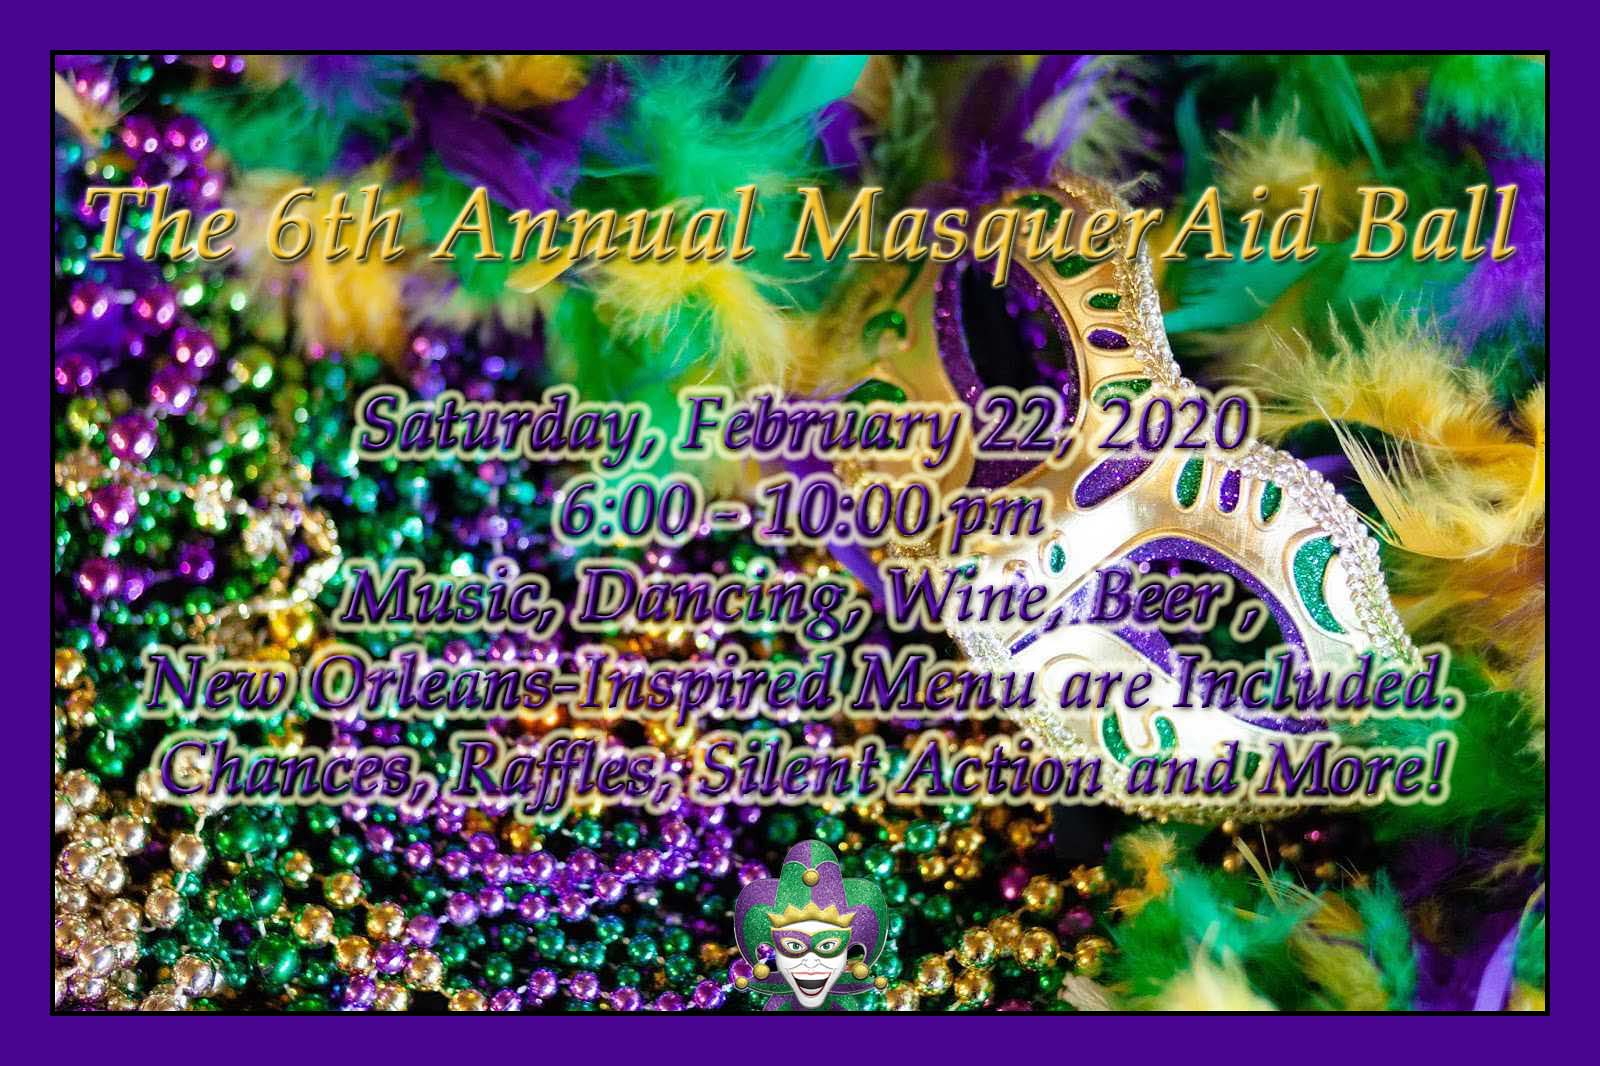 2020 MasquerAid Ball